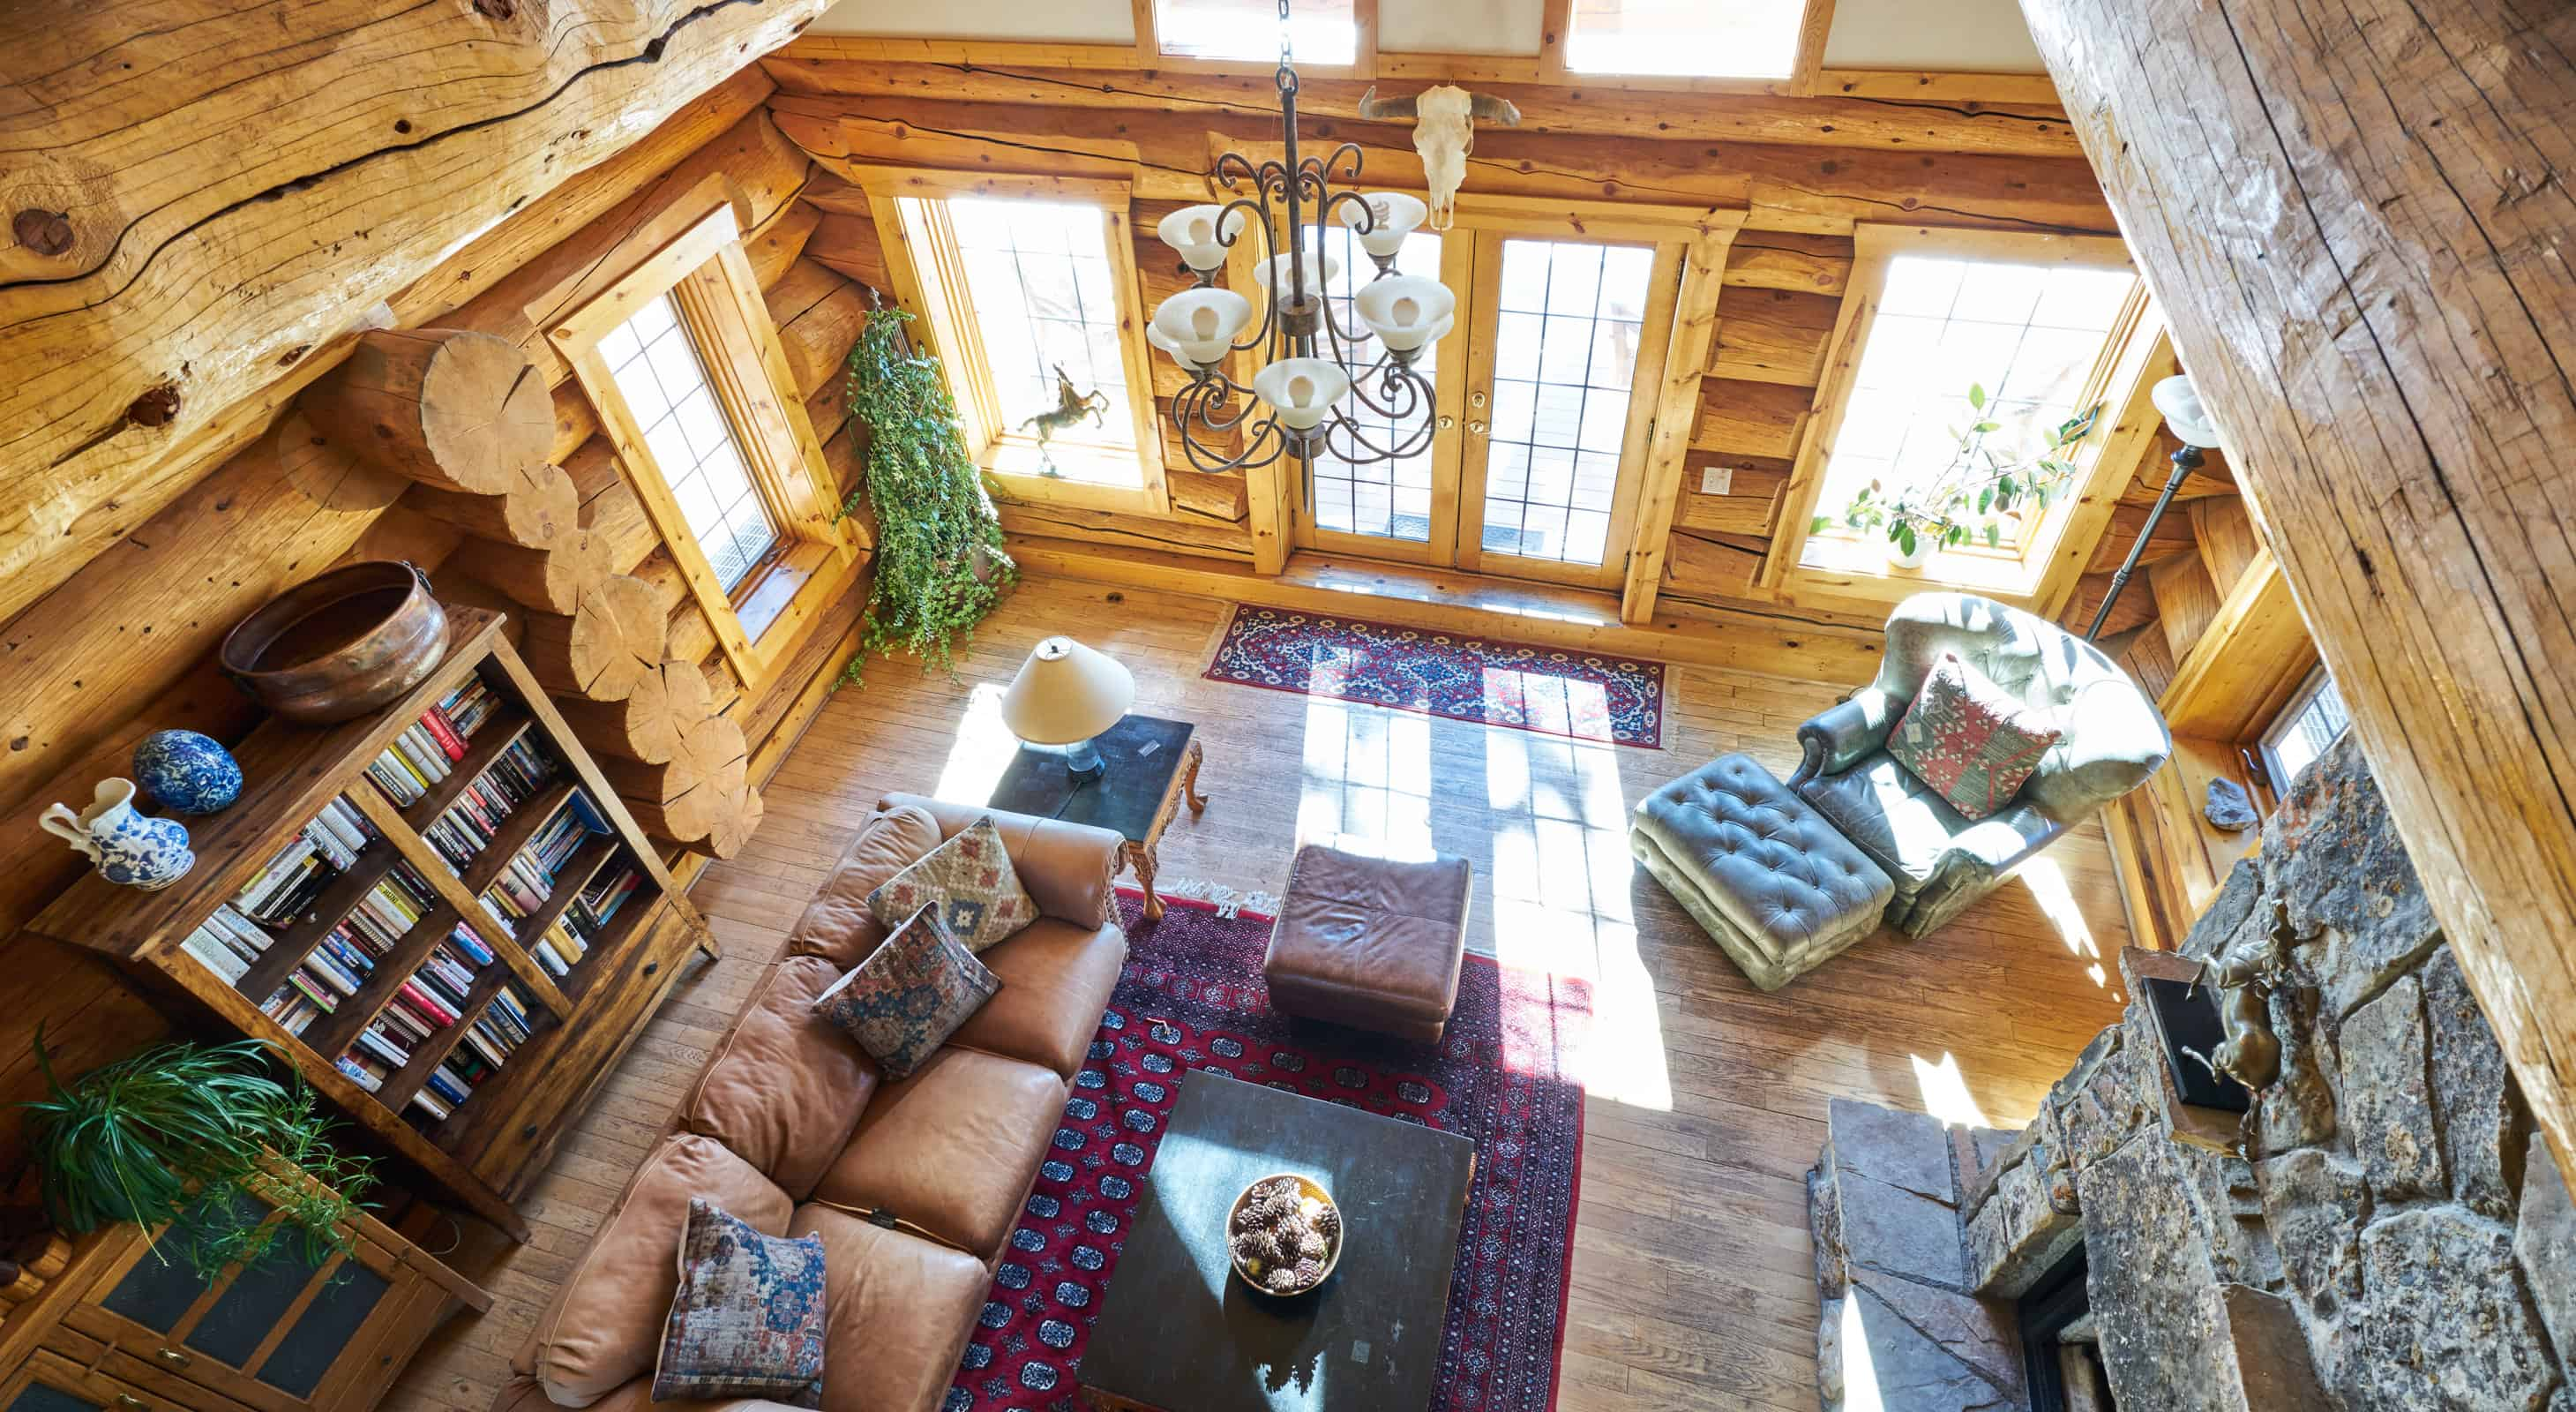 Log cabin lodge interior with rock fireplace - Rocky Mountains in Colorado